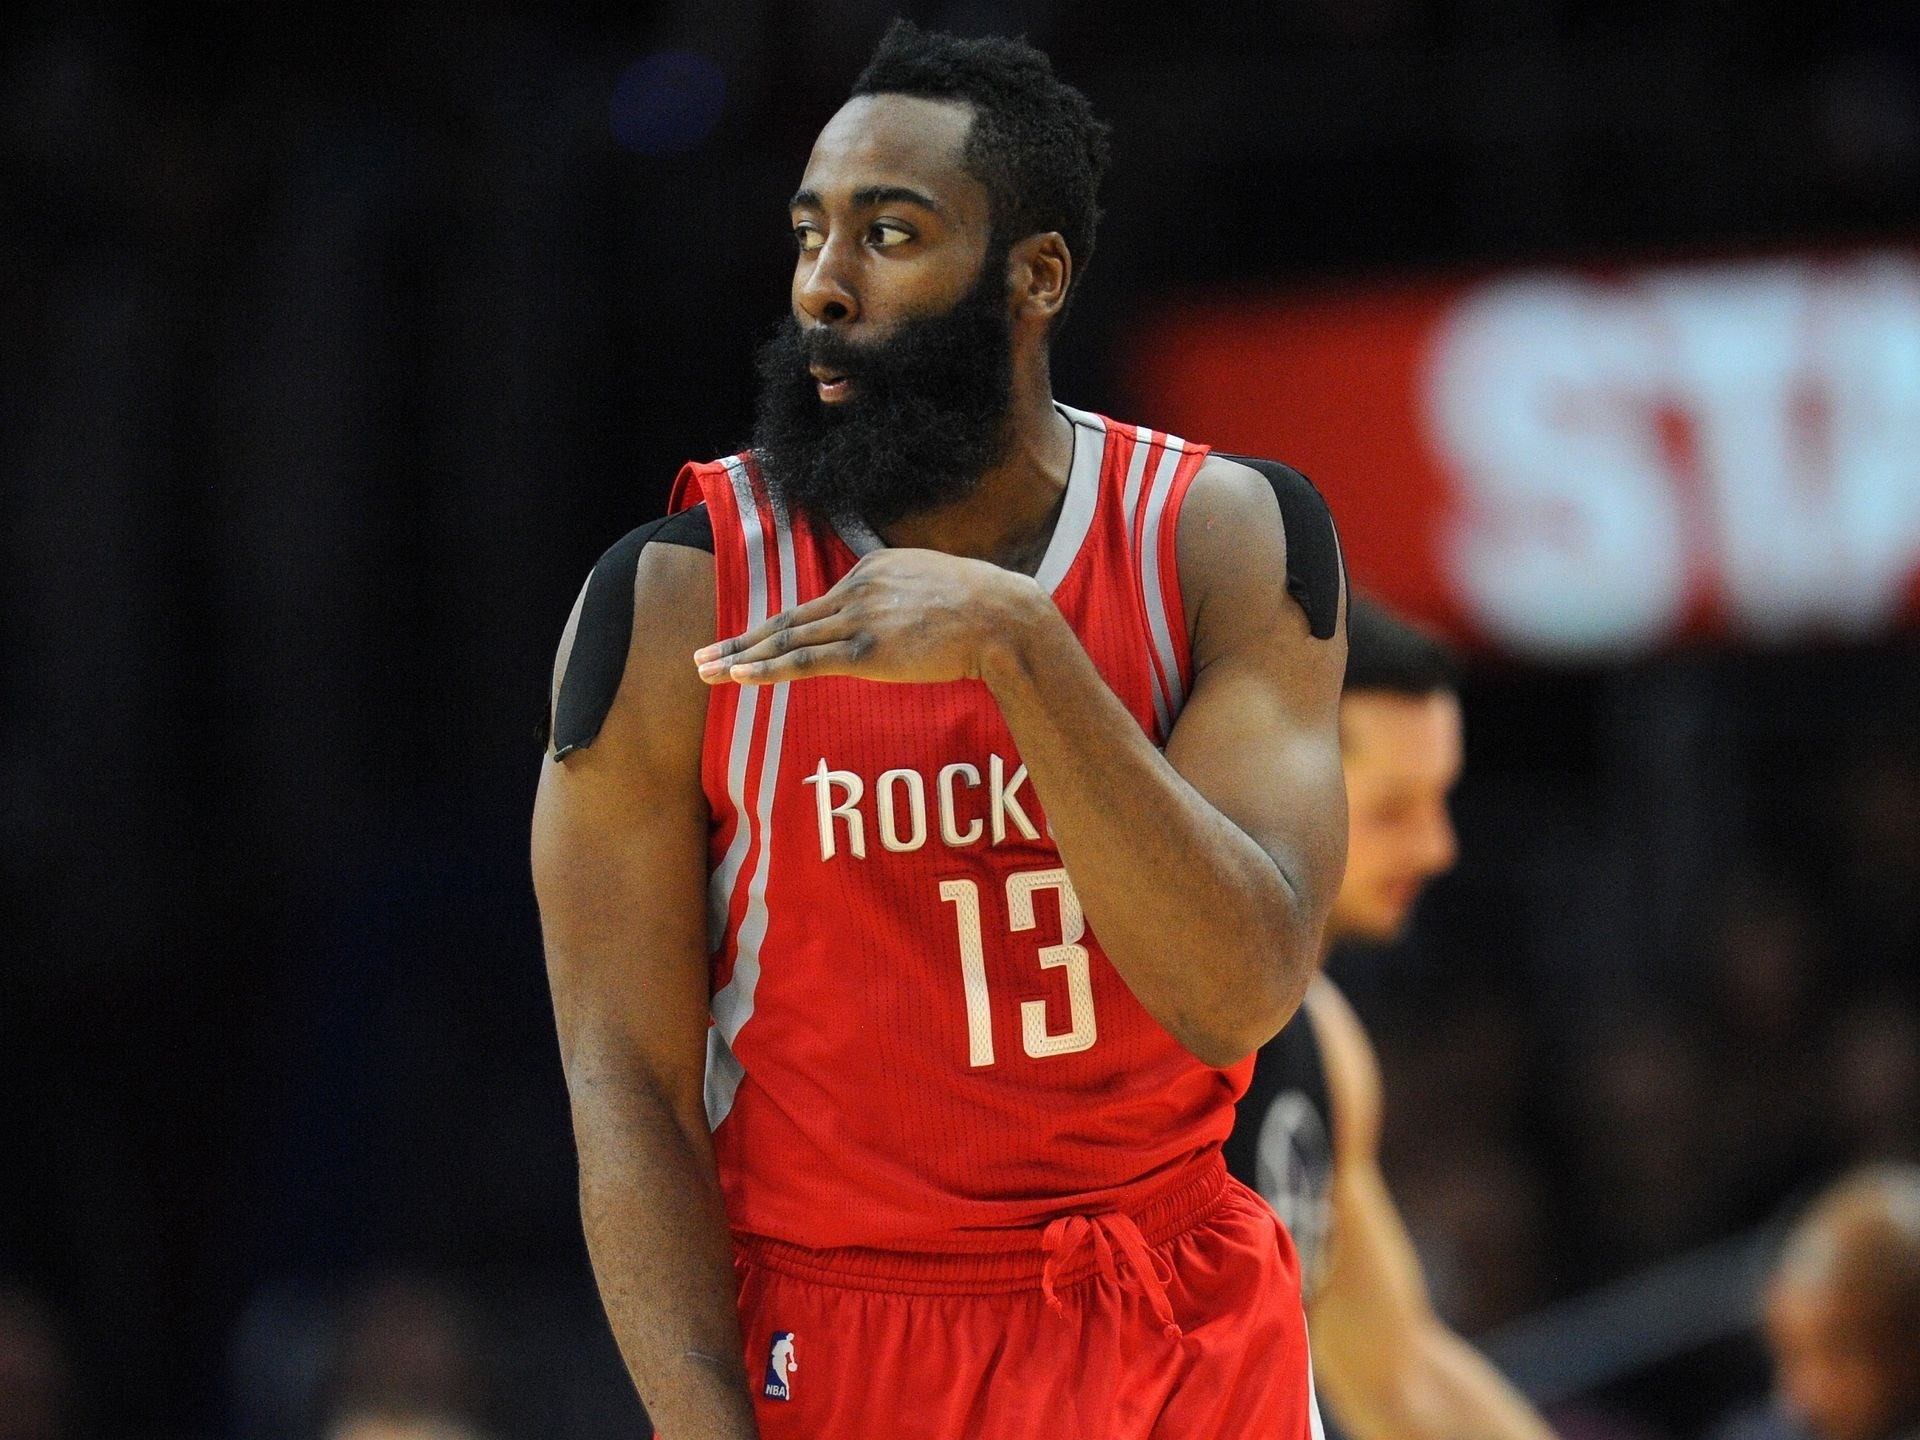 James Harden Wallpaper HD 84 Images